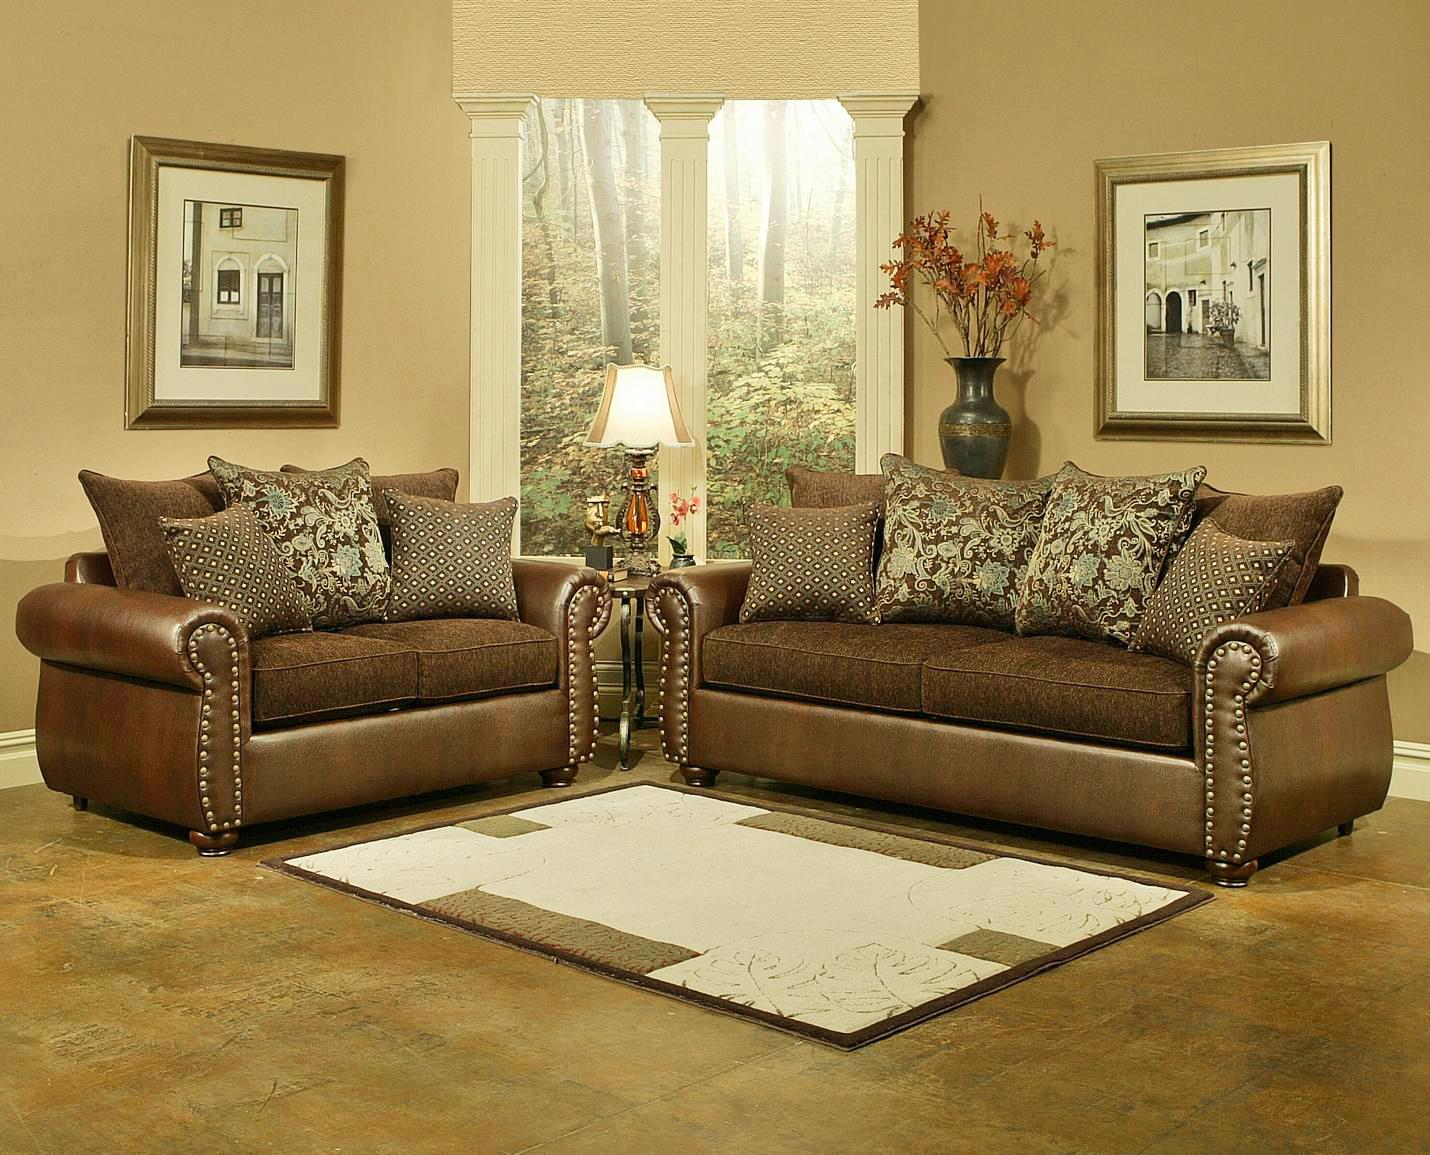 Comfort Industries Austin  Classic Styled Living Room Group - Item Number: AUSTIN LIVING ROOM GROUP